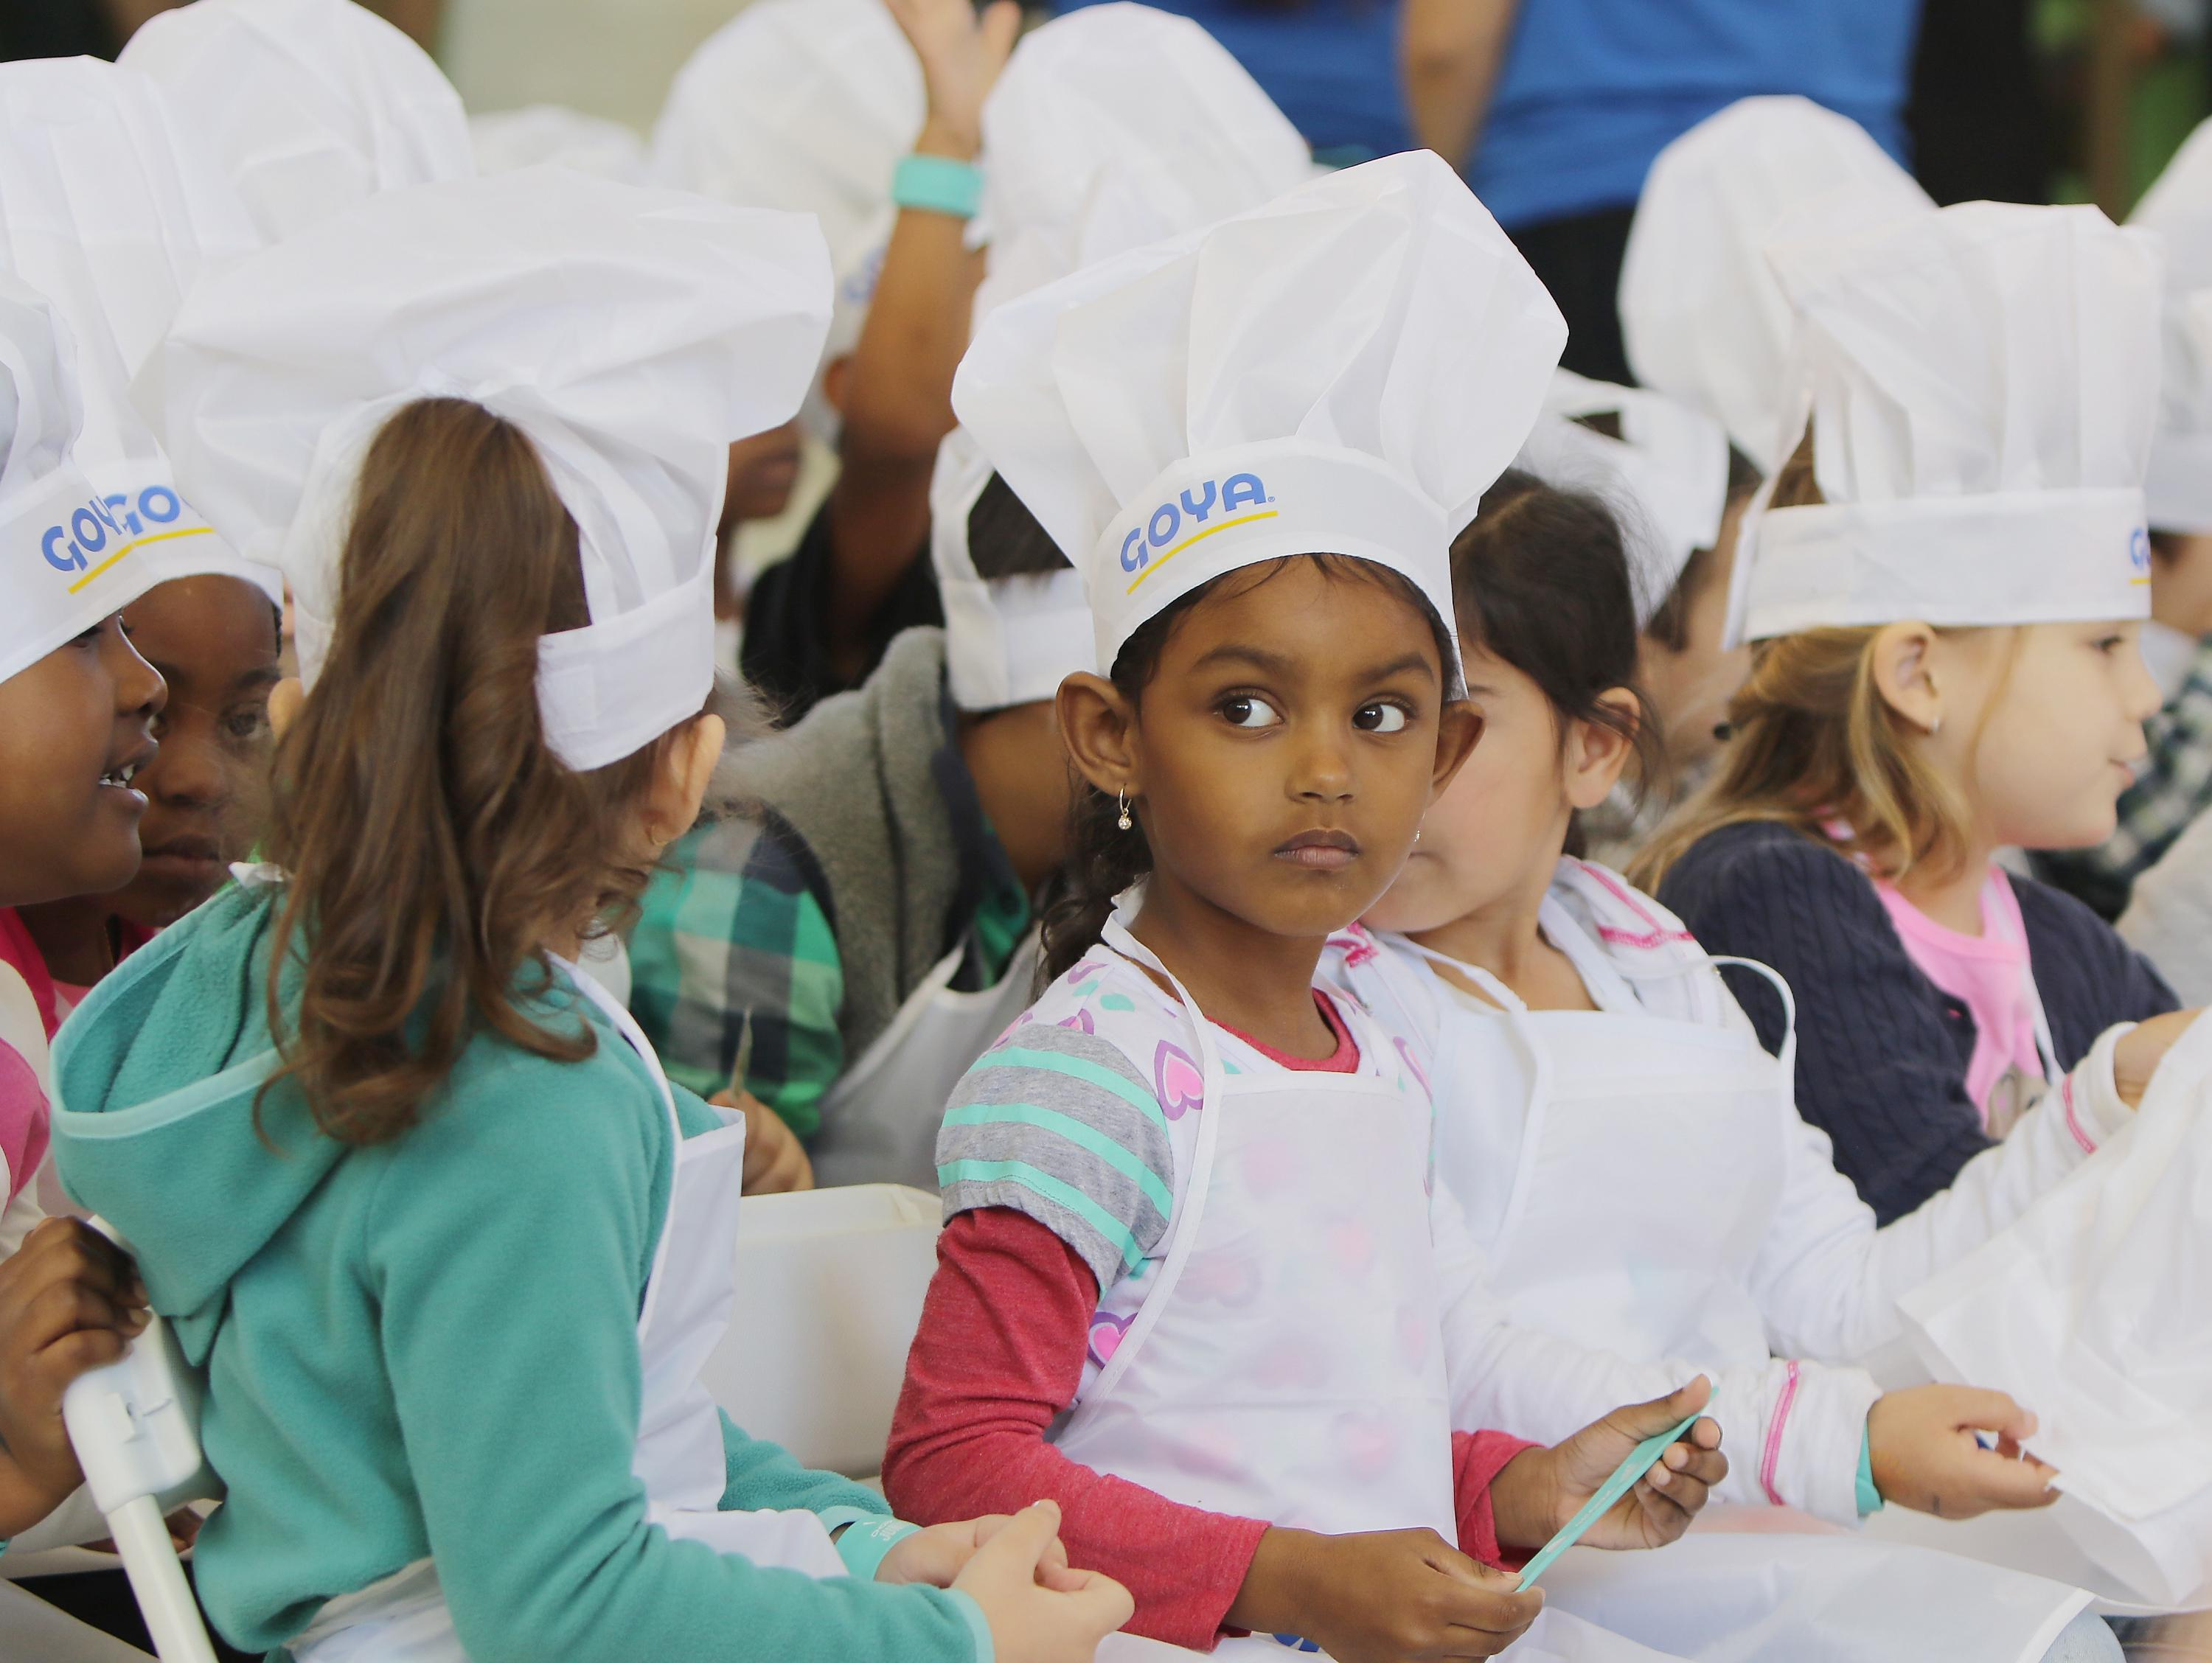 Children wearing chefs' hats.